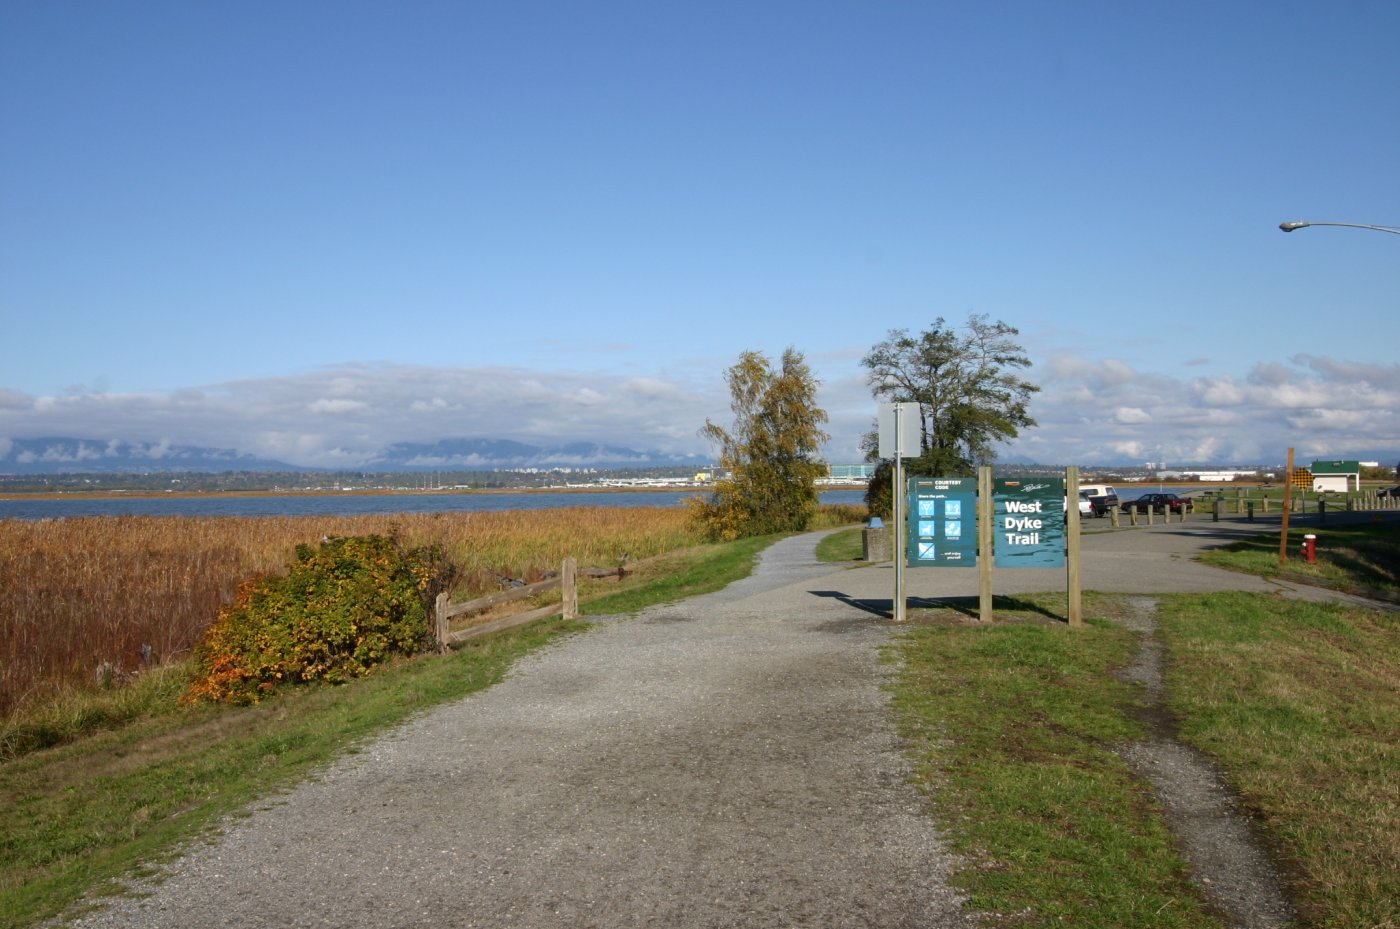 West Dyke Trail | Terra Nova Park